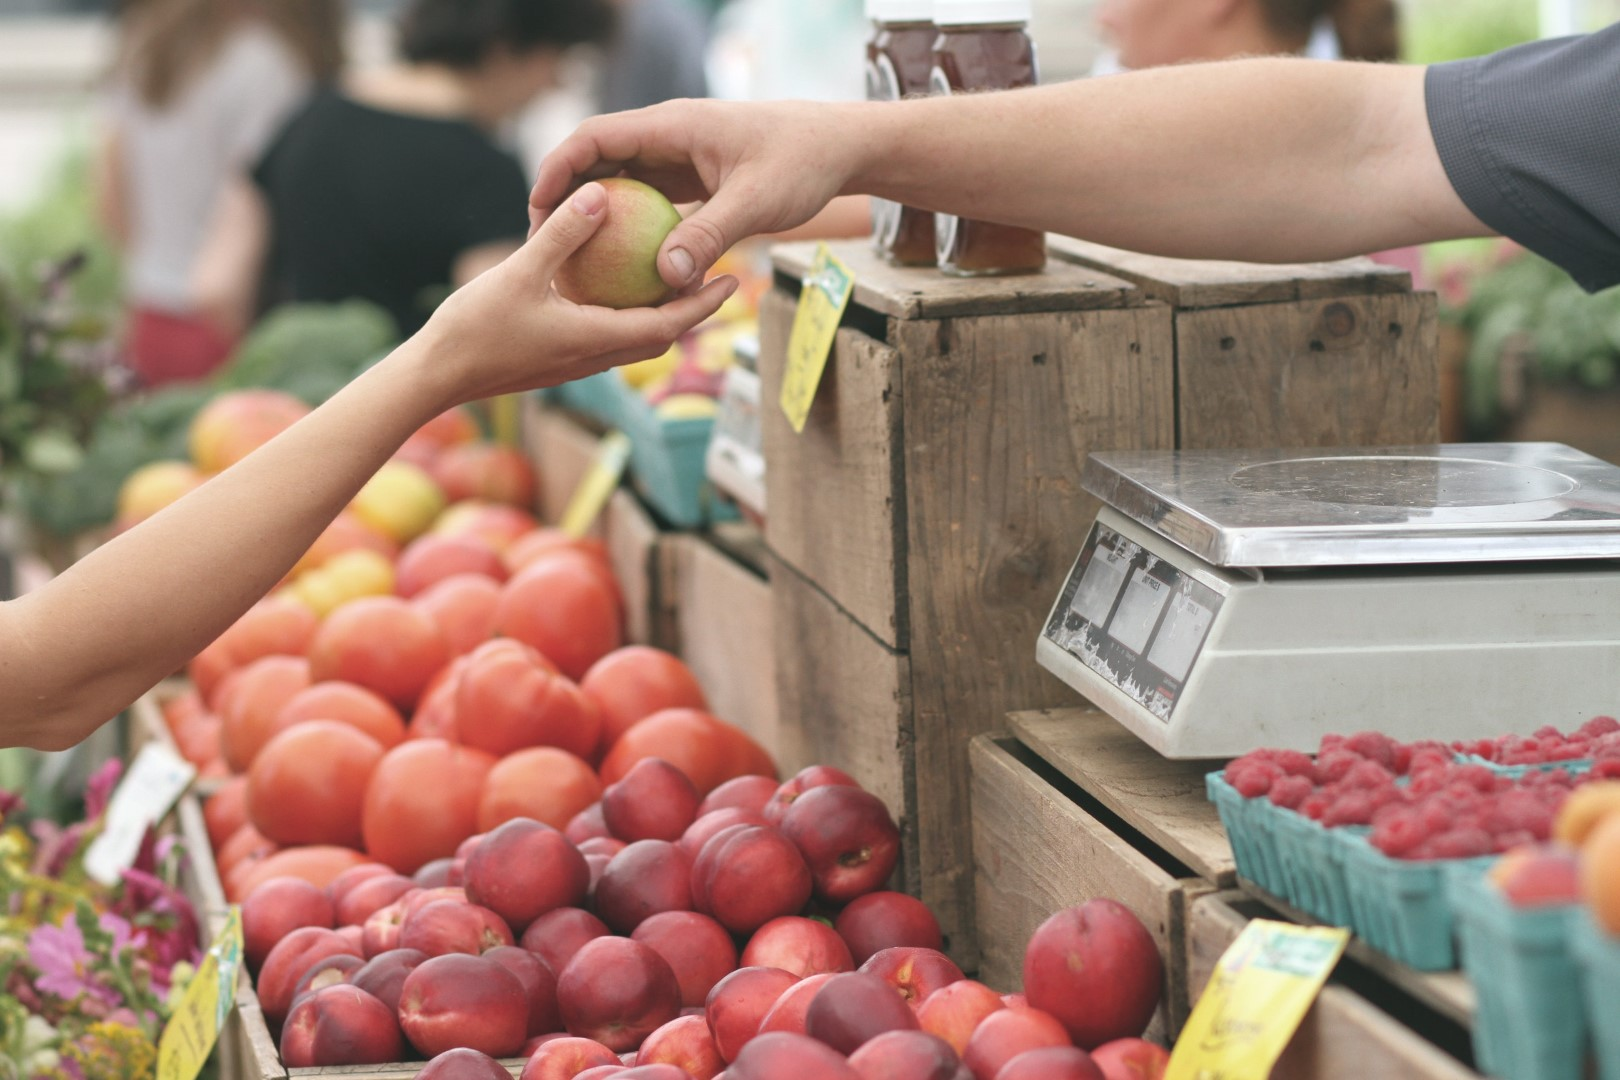 budget travel europe: go grocery shopping instead of eating out